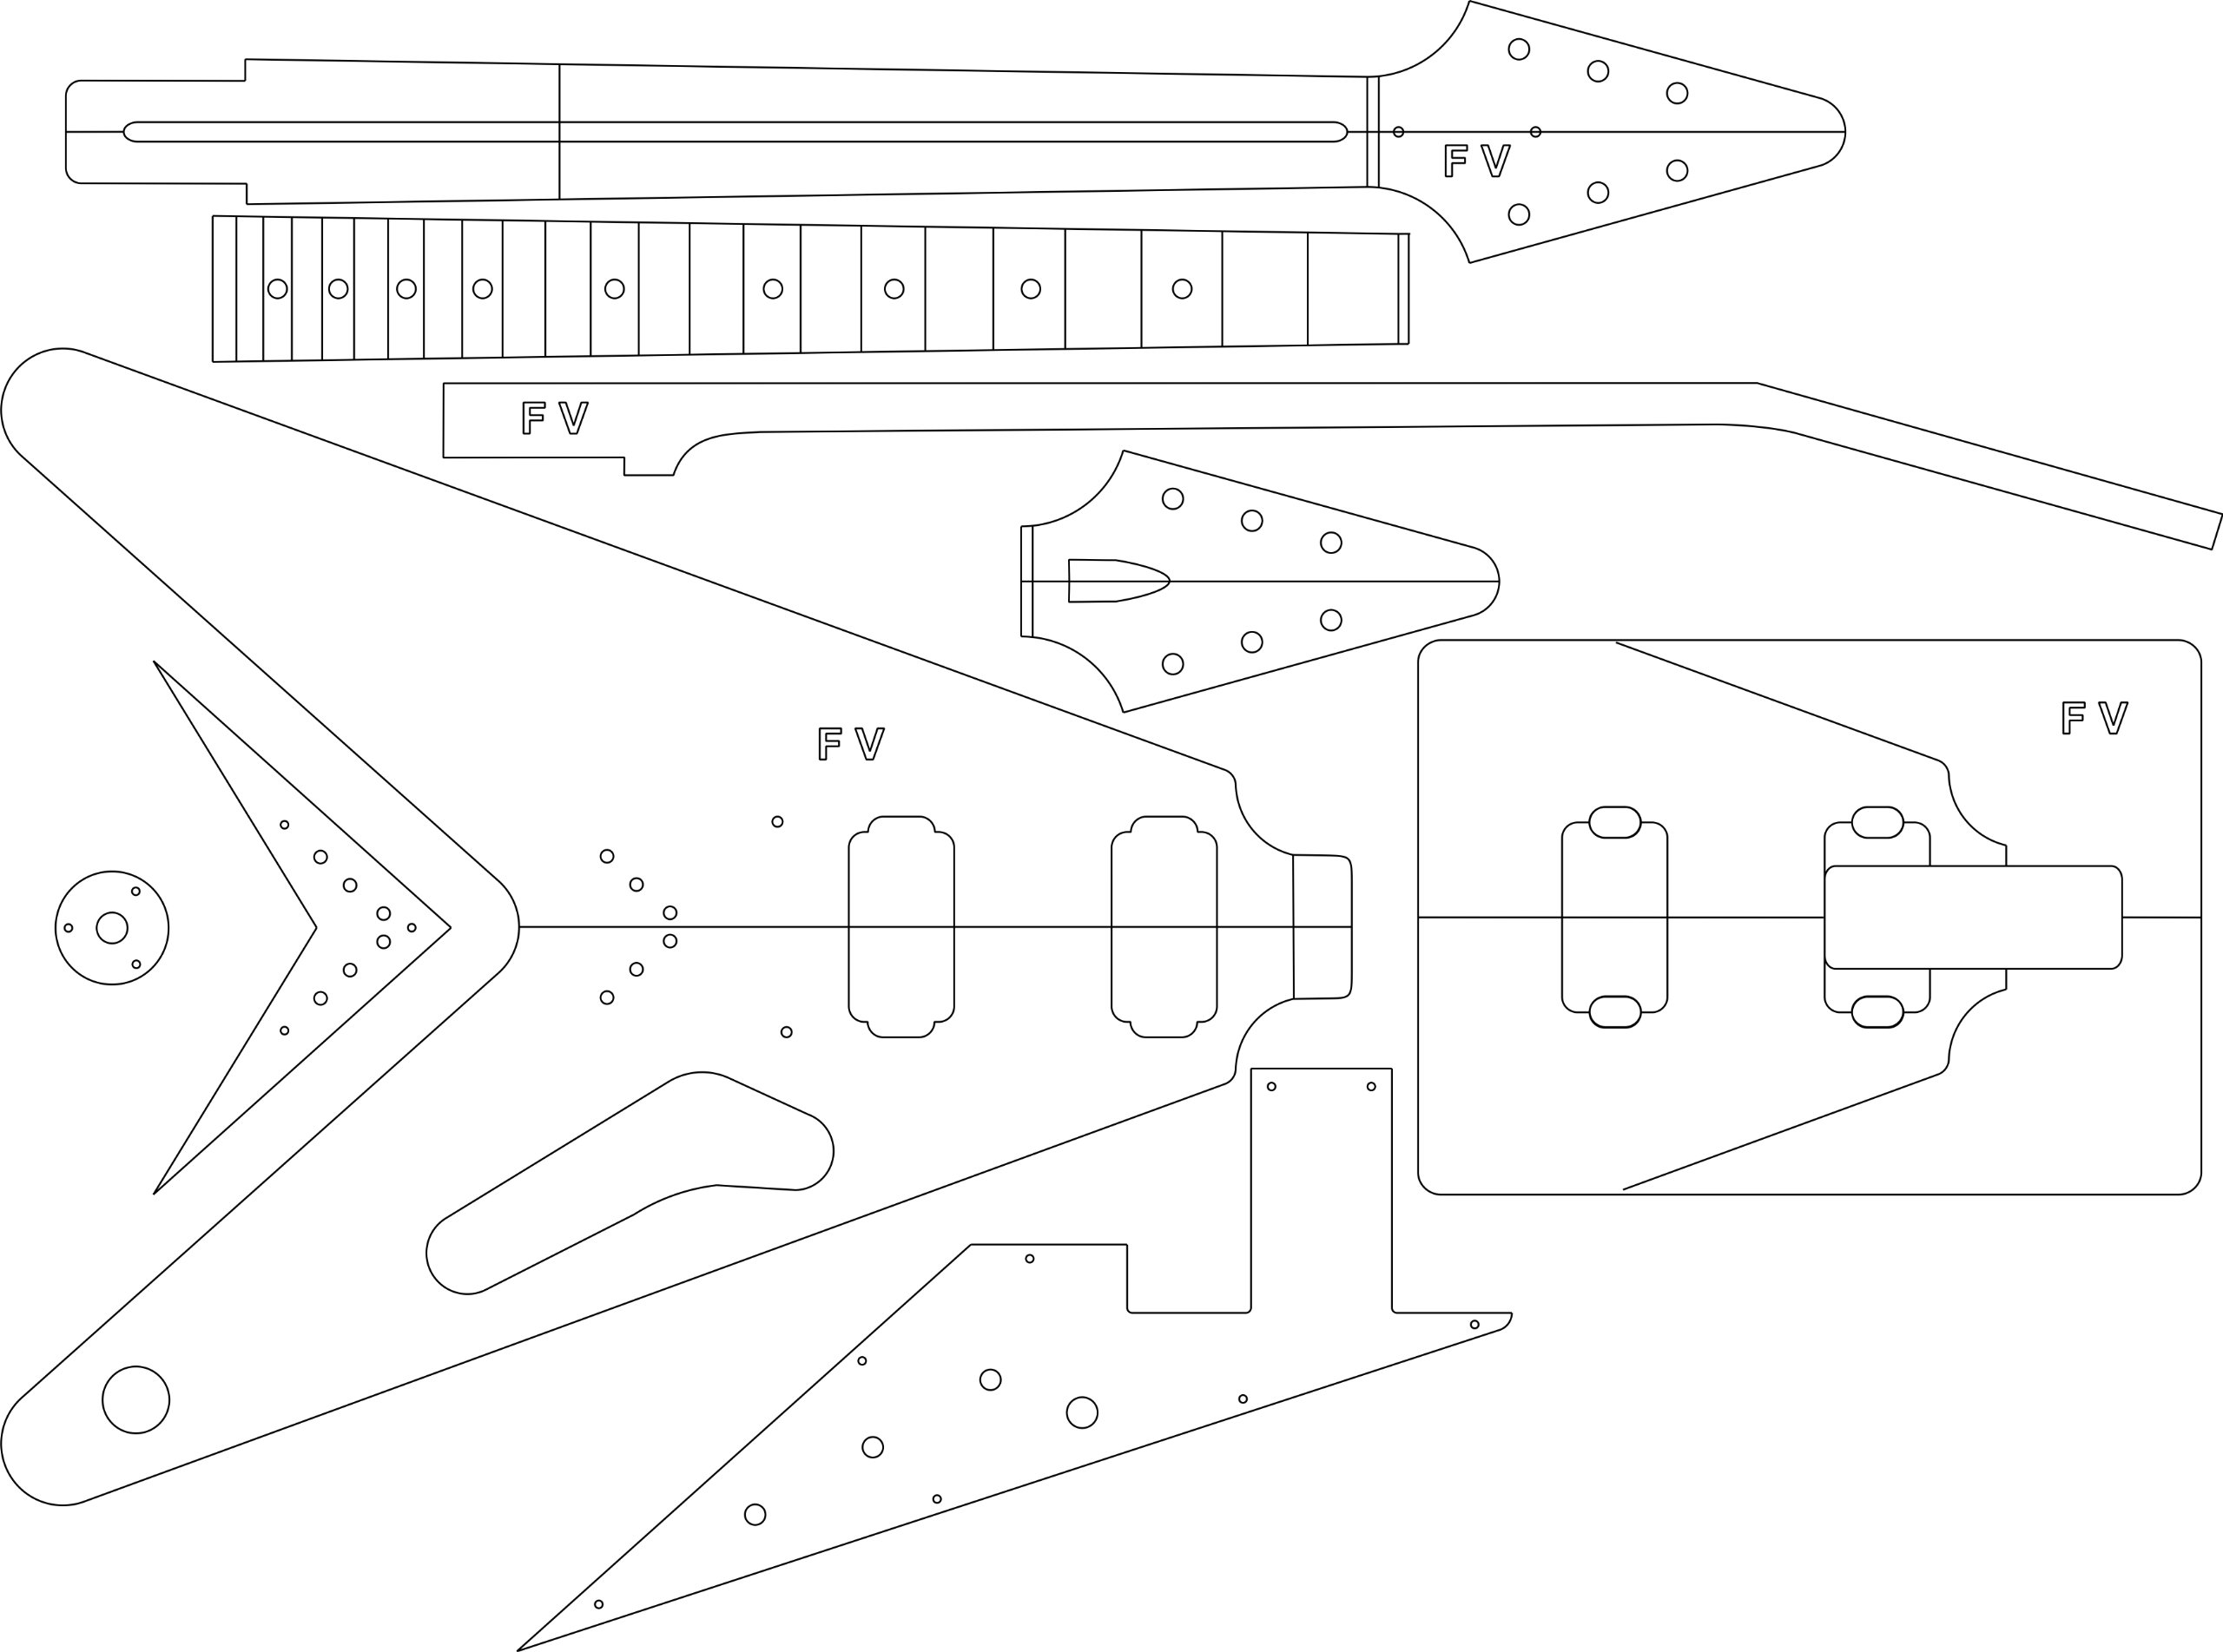 Electric Guitar Layout Template - '58 V